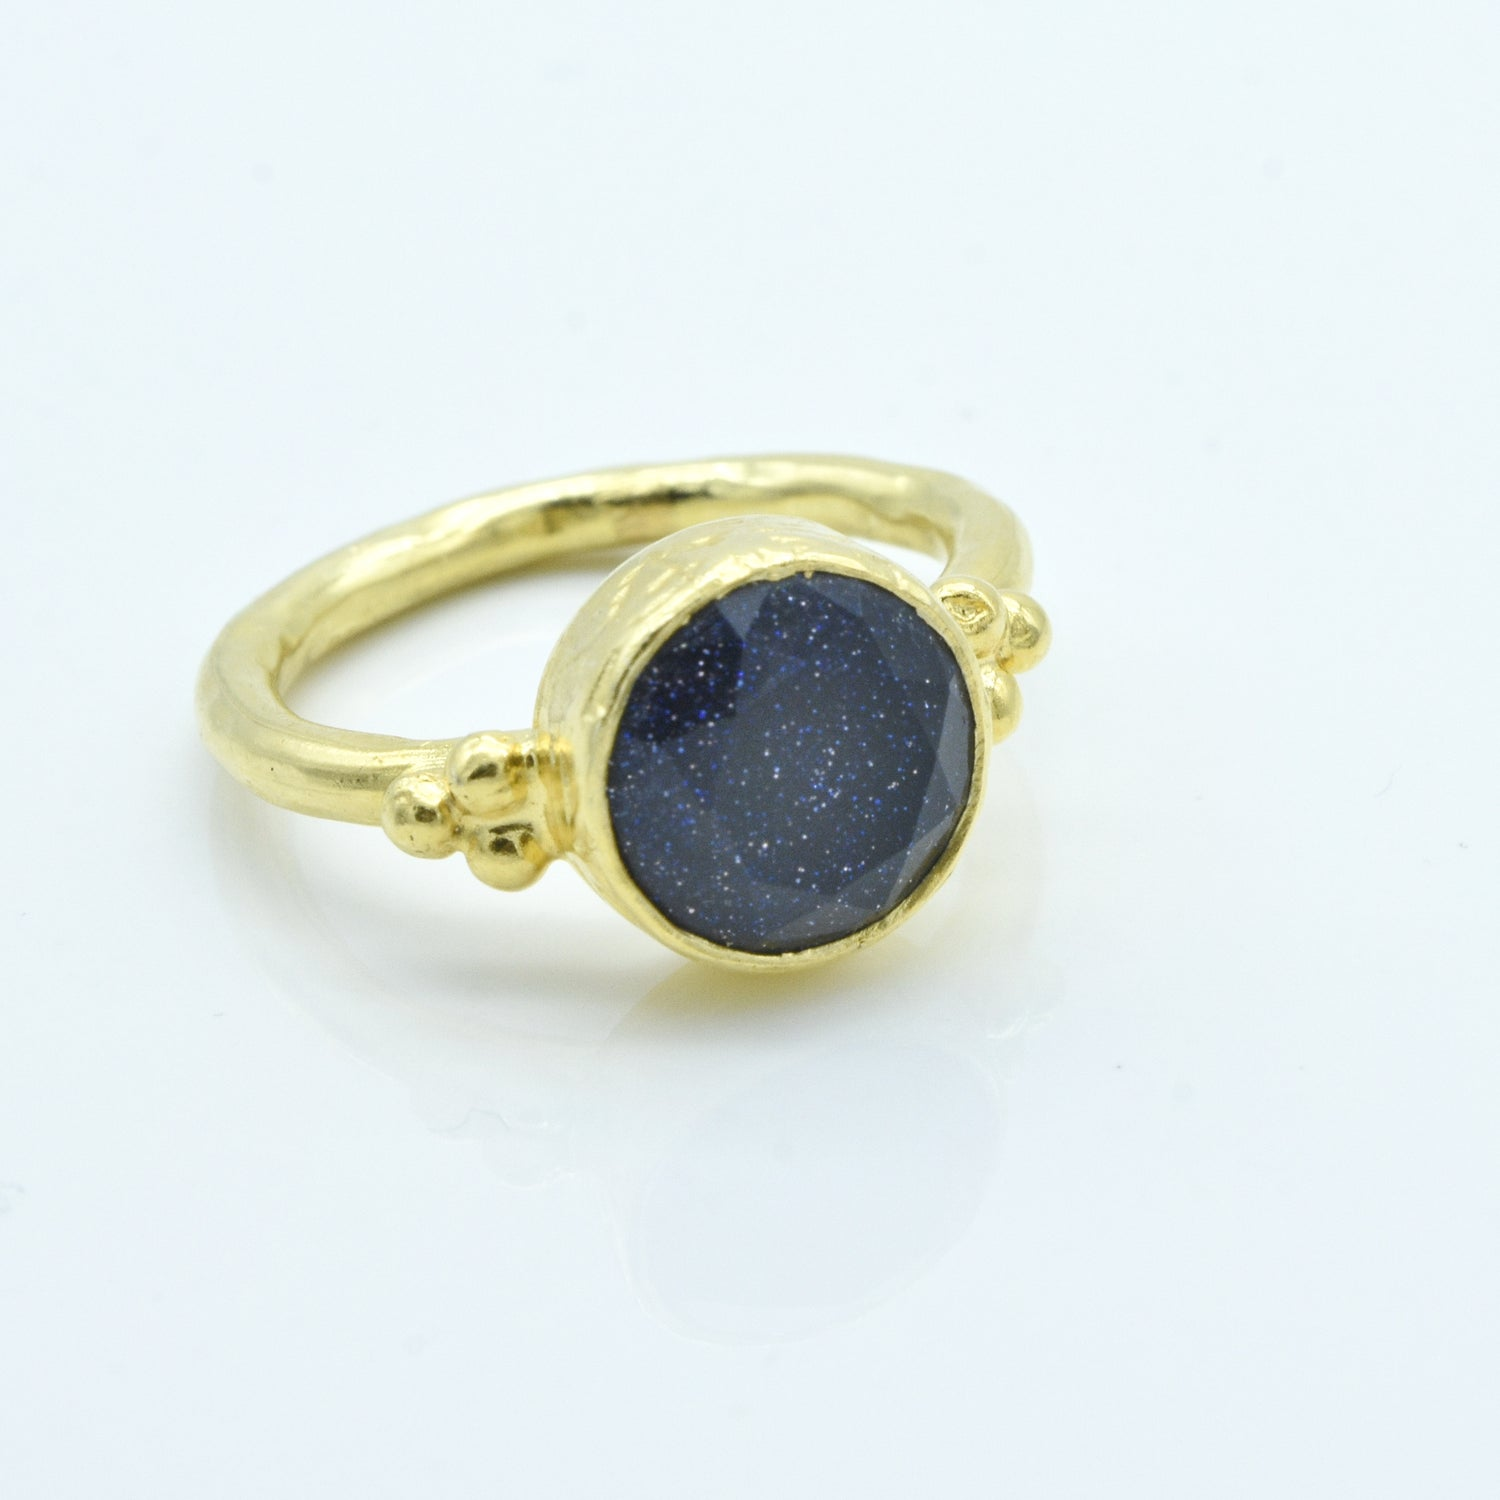 Aylas Goldstone ring - 21ct Gold plated 925 silver - Handmade in Ottoman Style by Artisan